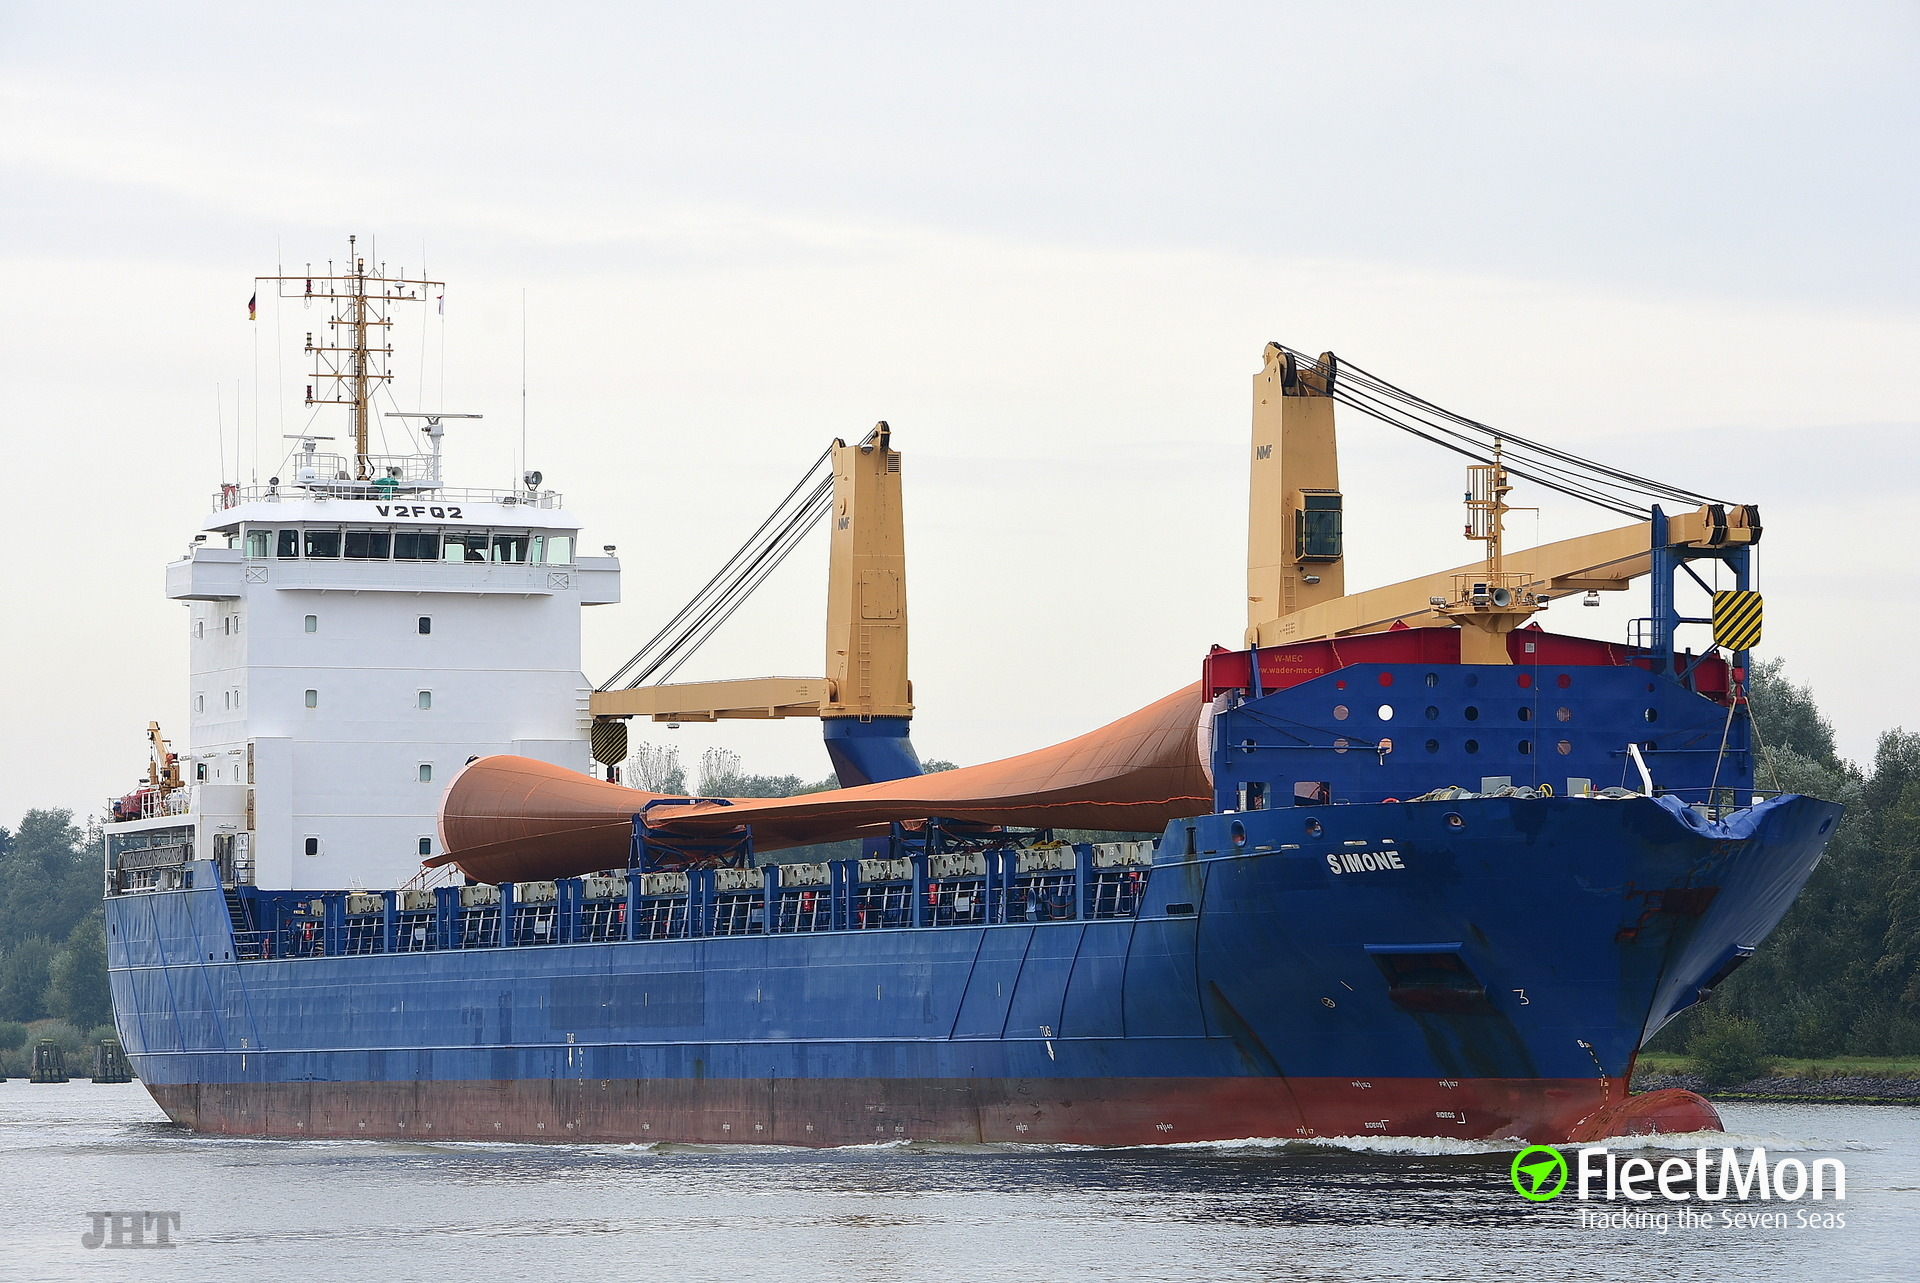 Freighter with engine problem in the Atlantic